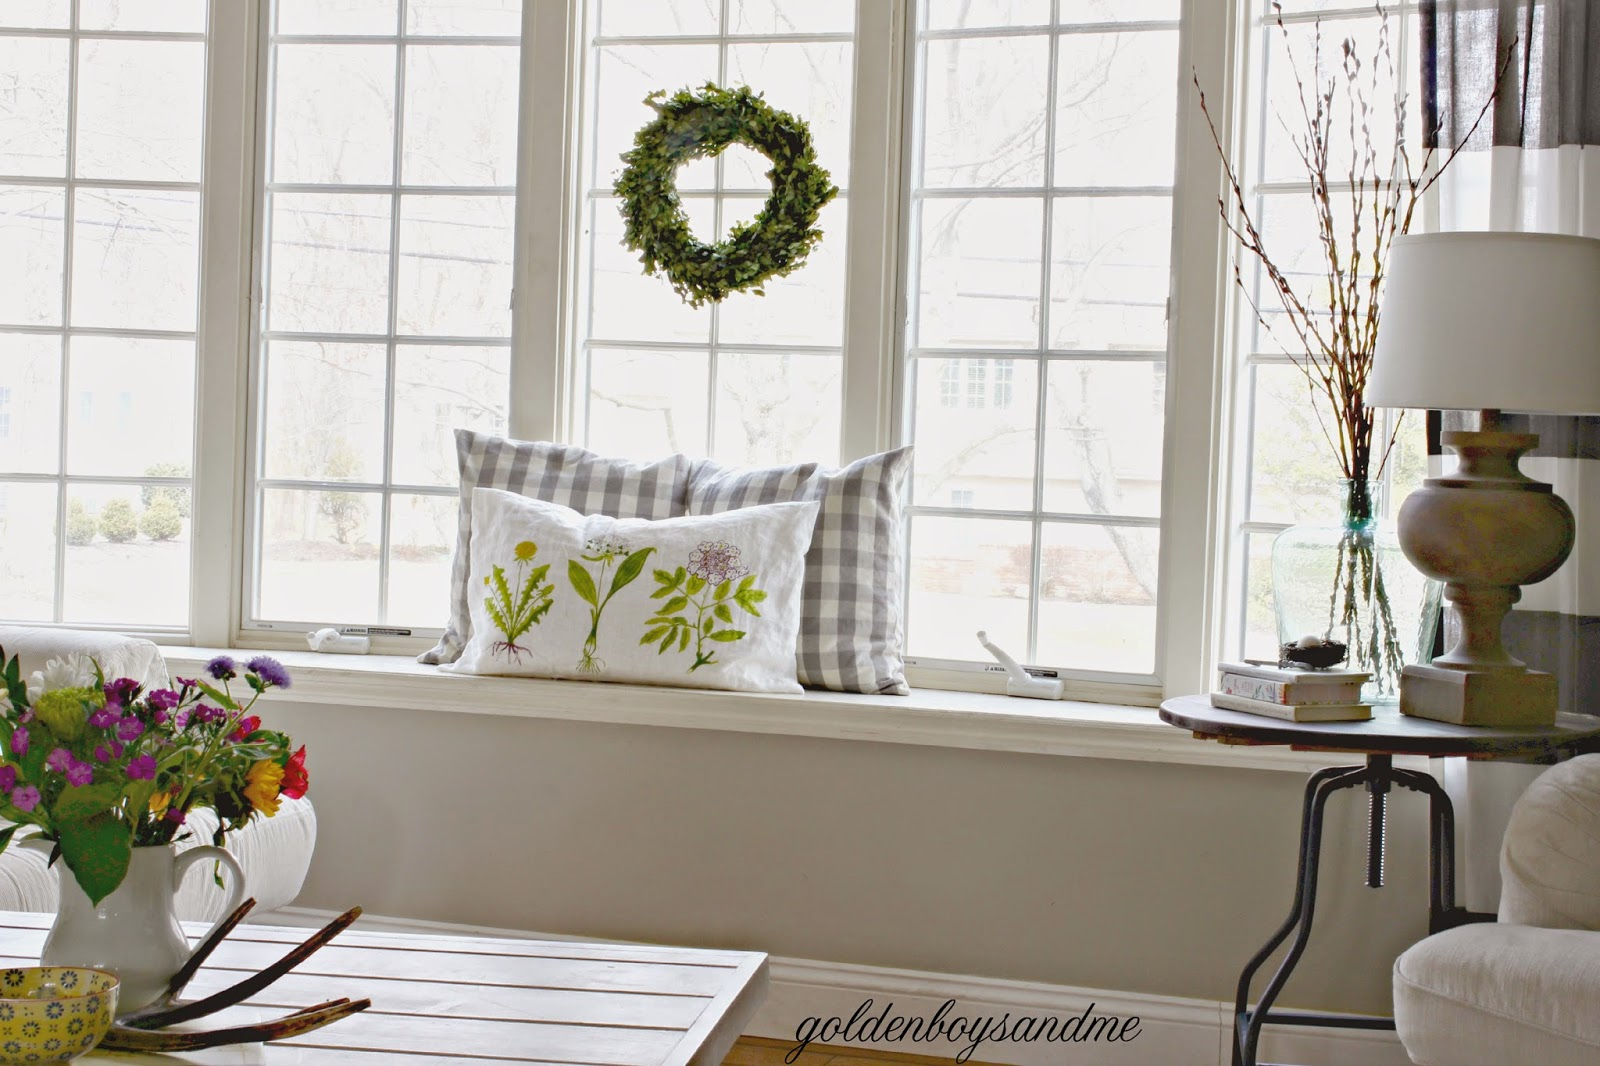 Window seat in living room-www.goldenboysandme.com